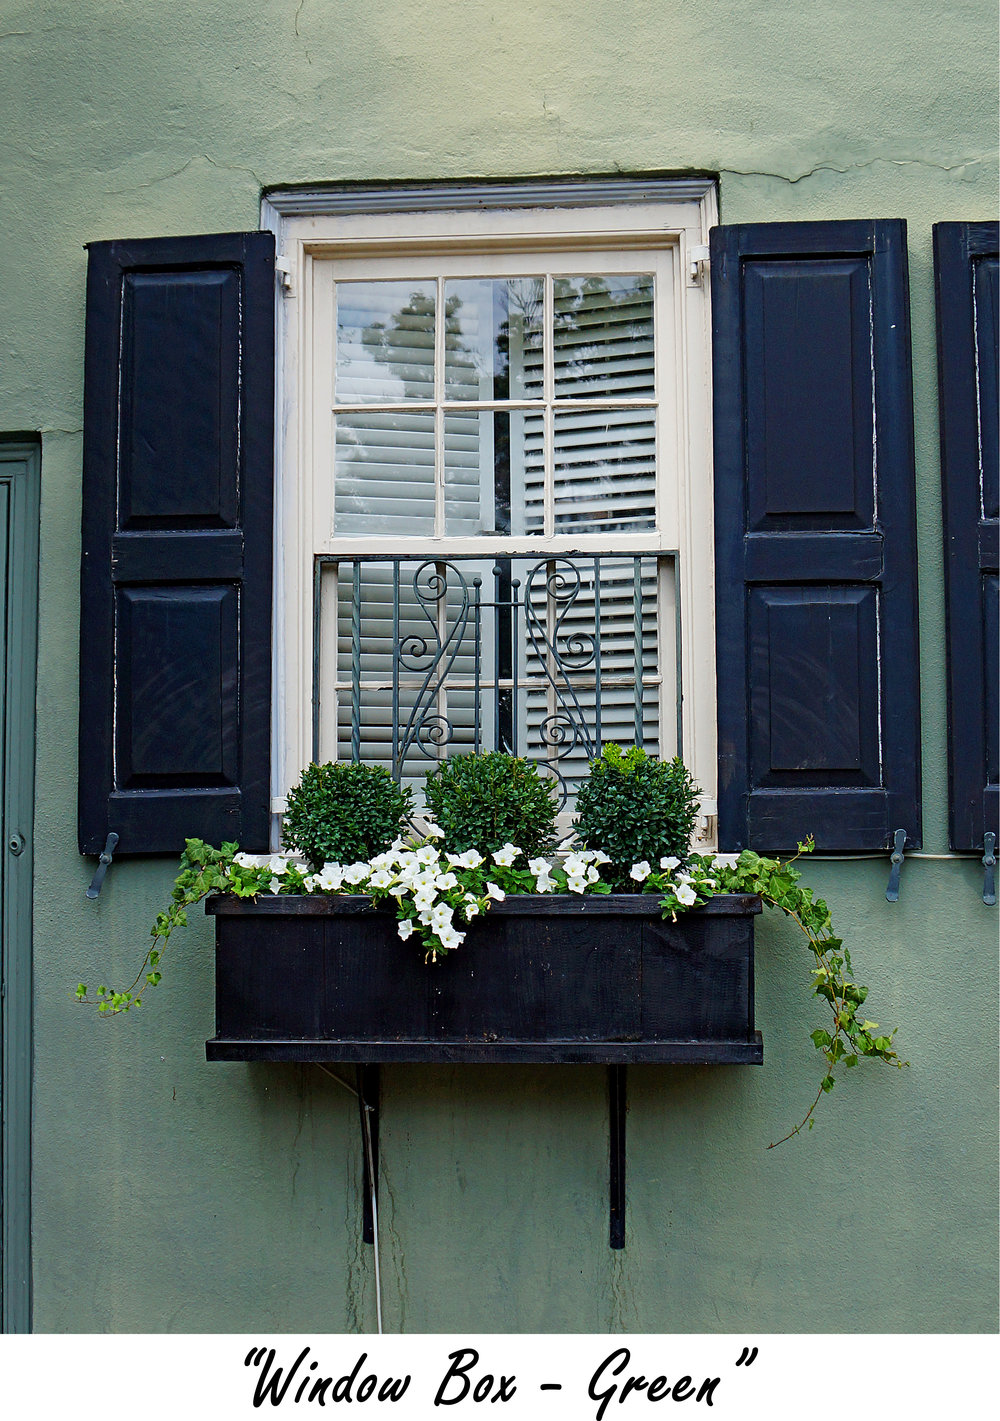 windowbox Green.jpg